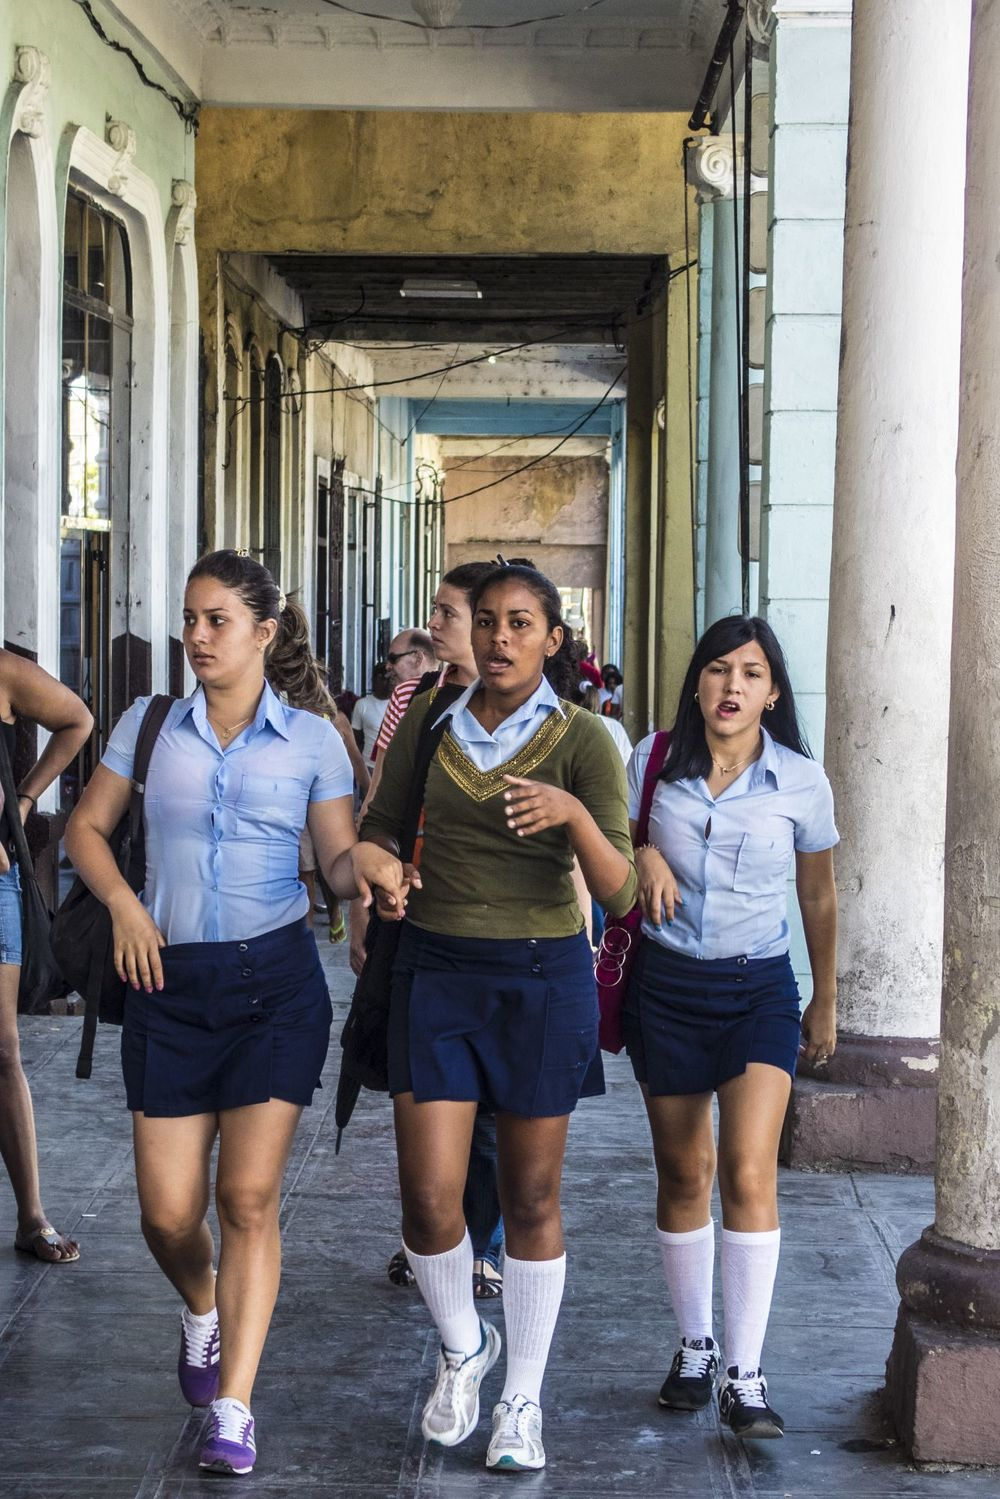 girls-street-cuba-students-michael-benabib-photography.JPG